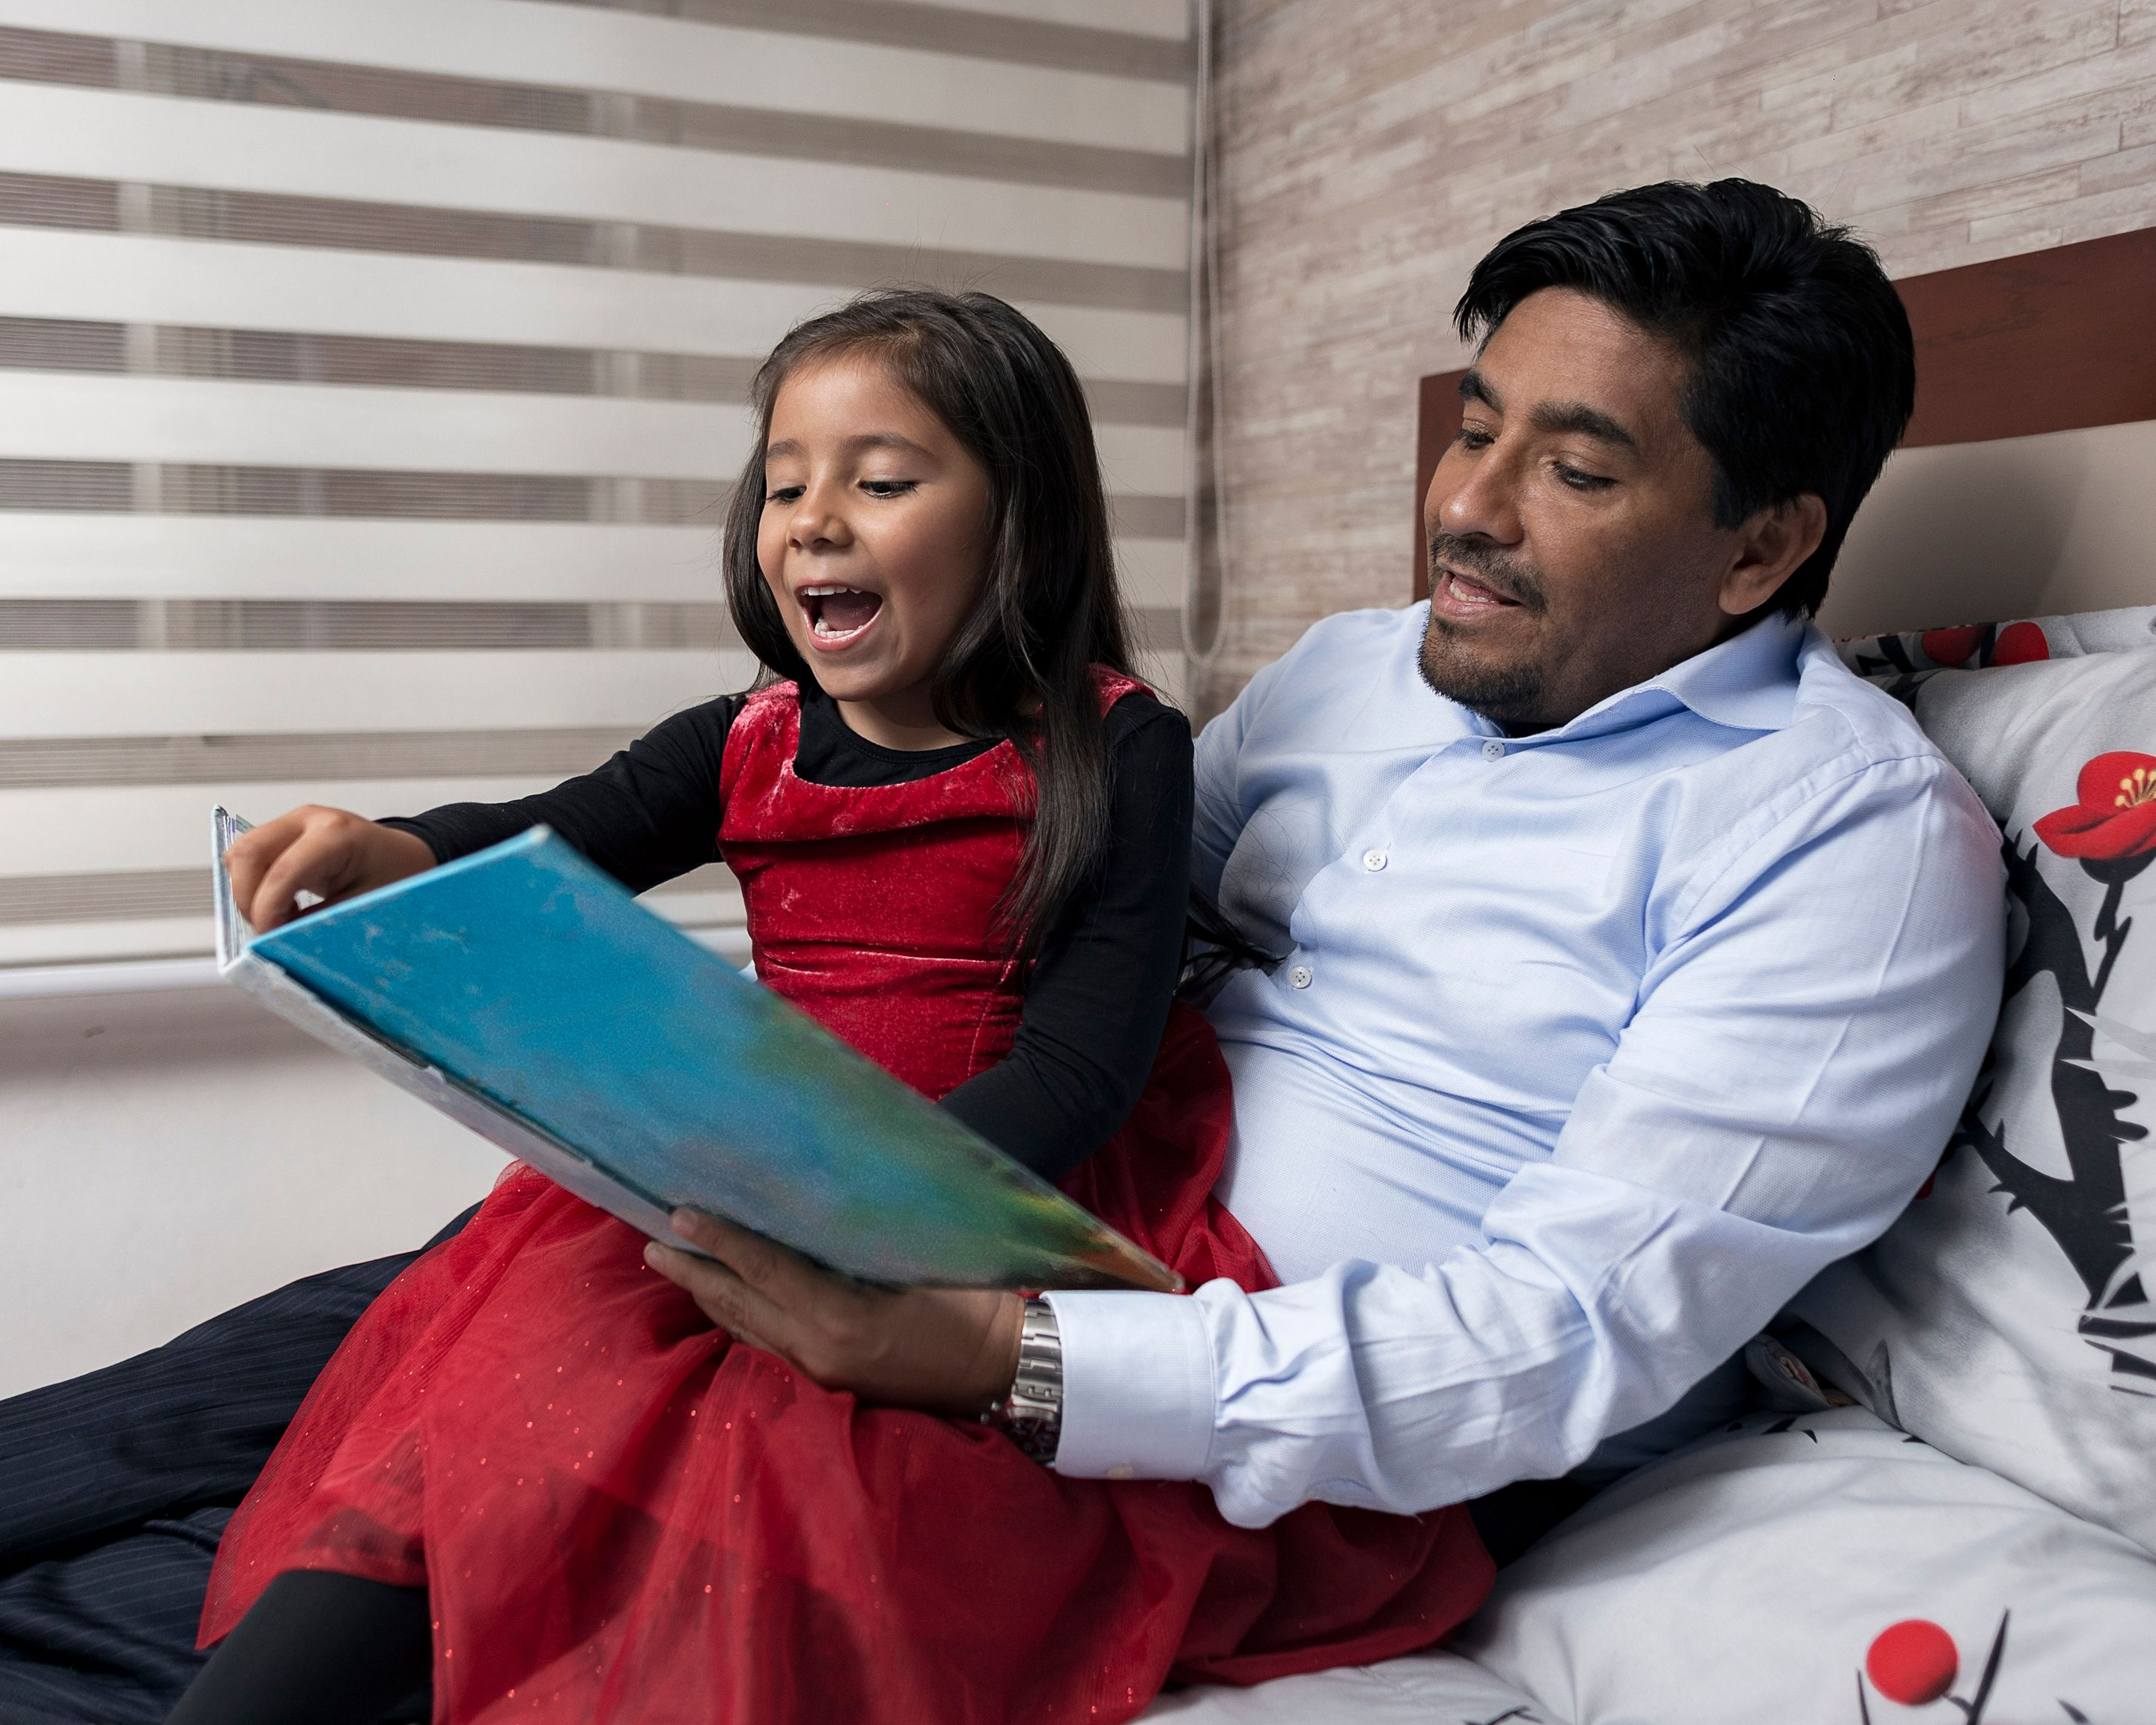 A father reading a picture book with his daughter